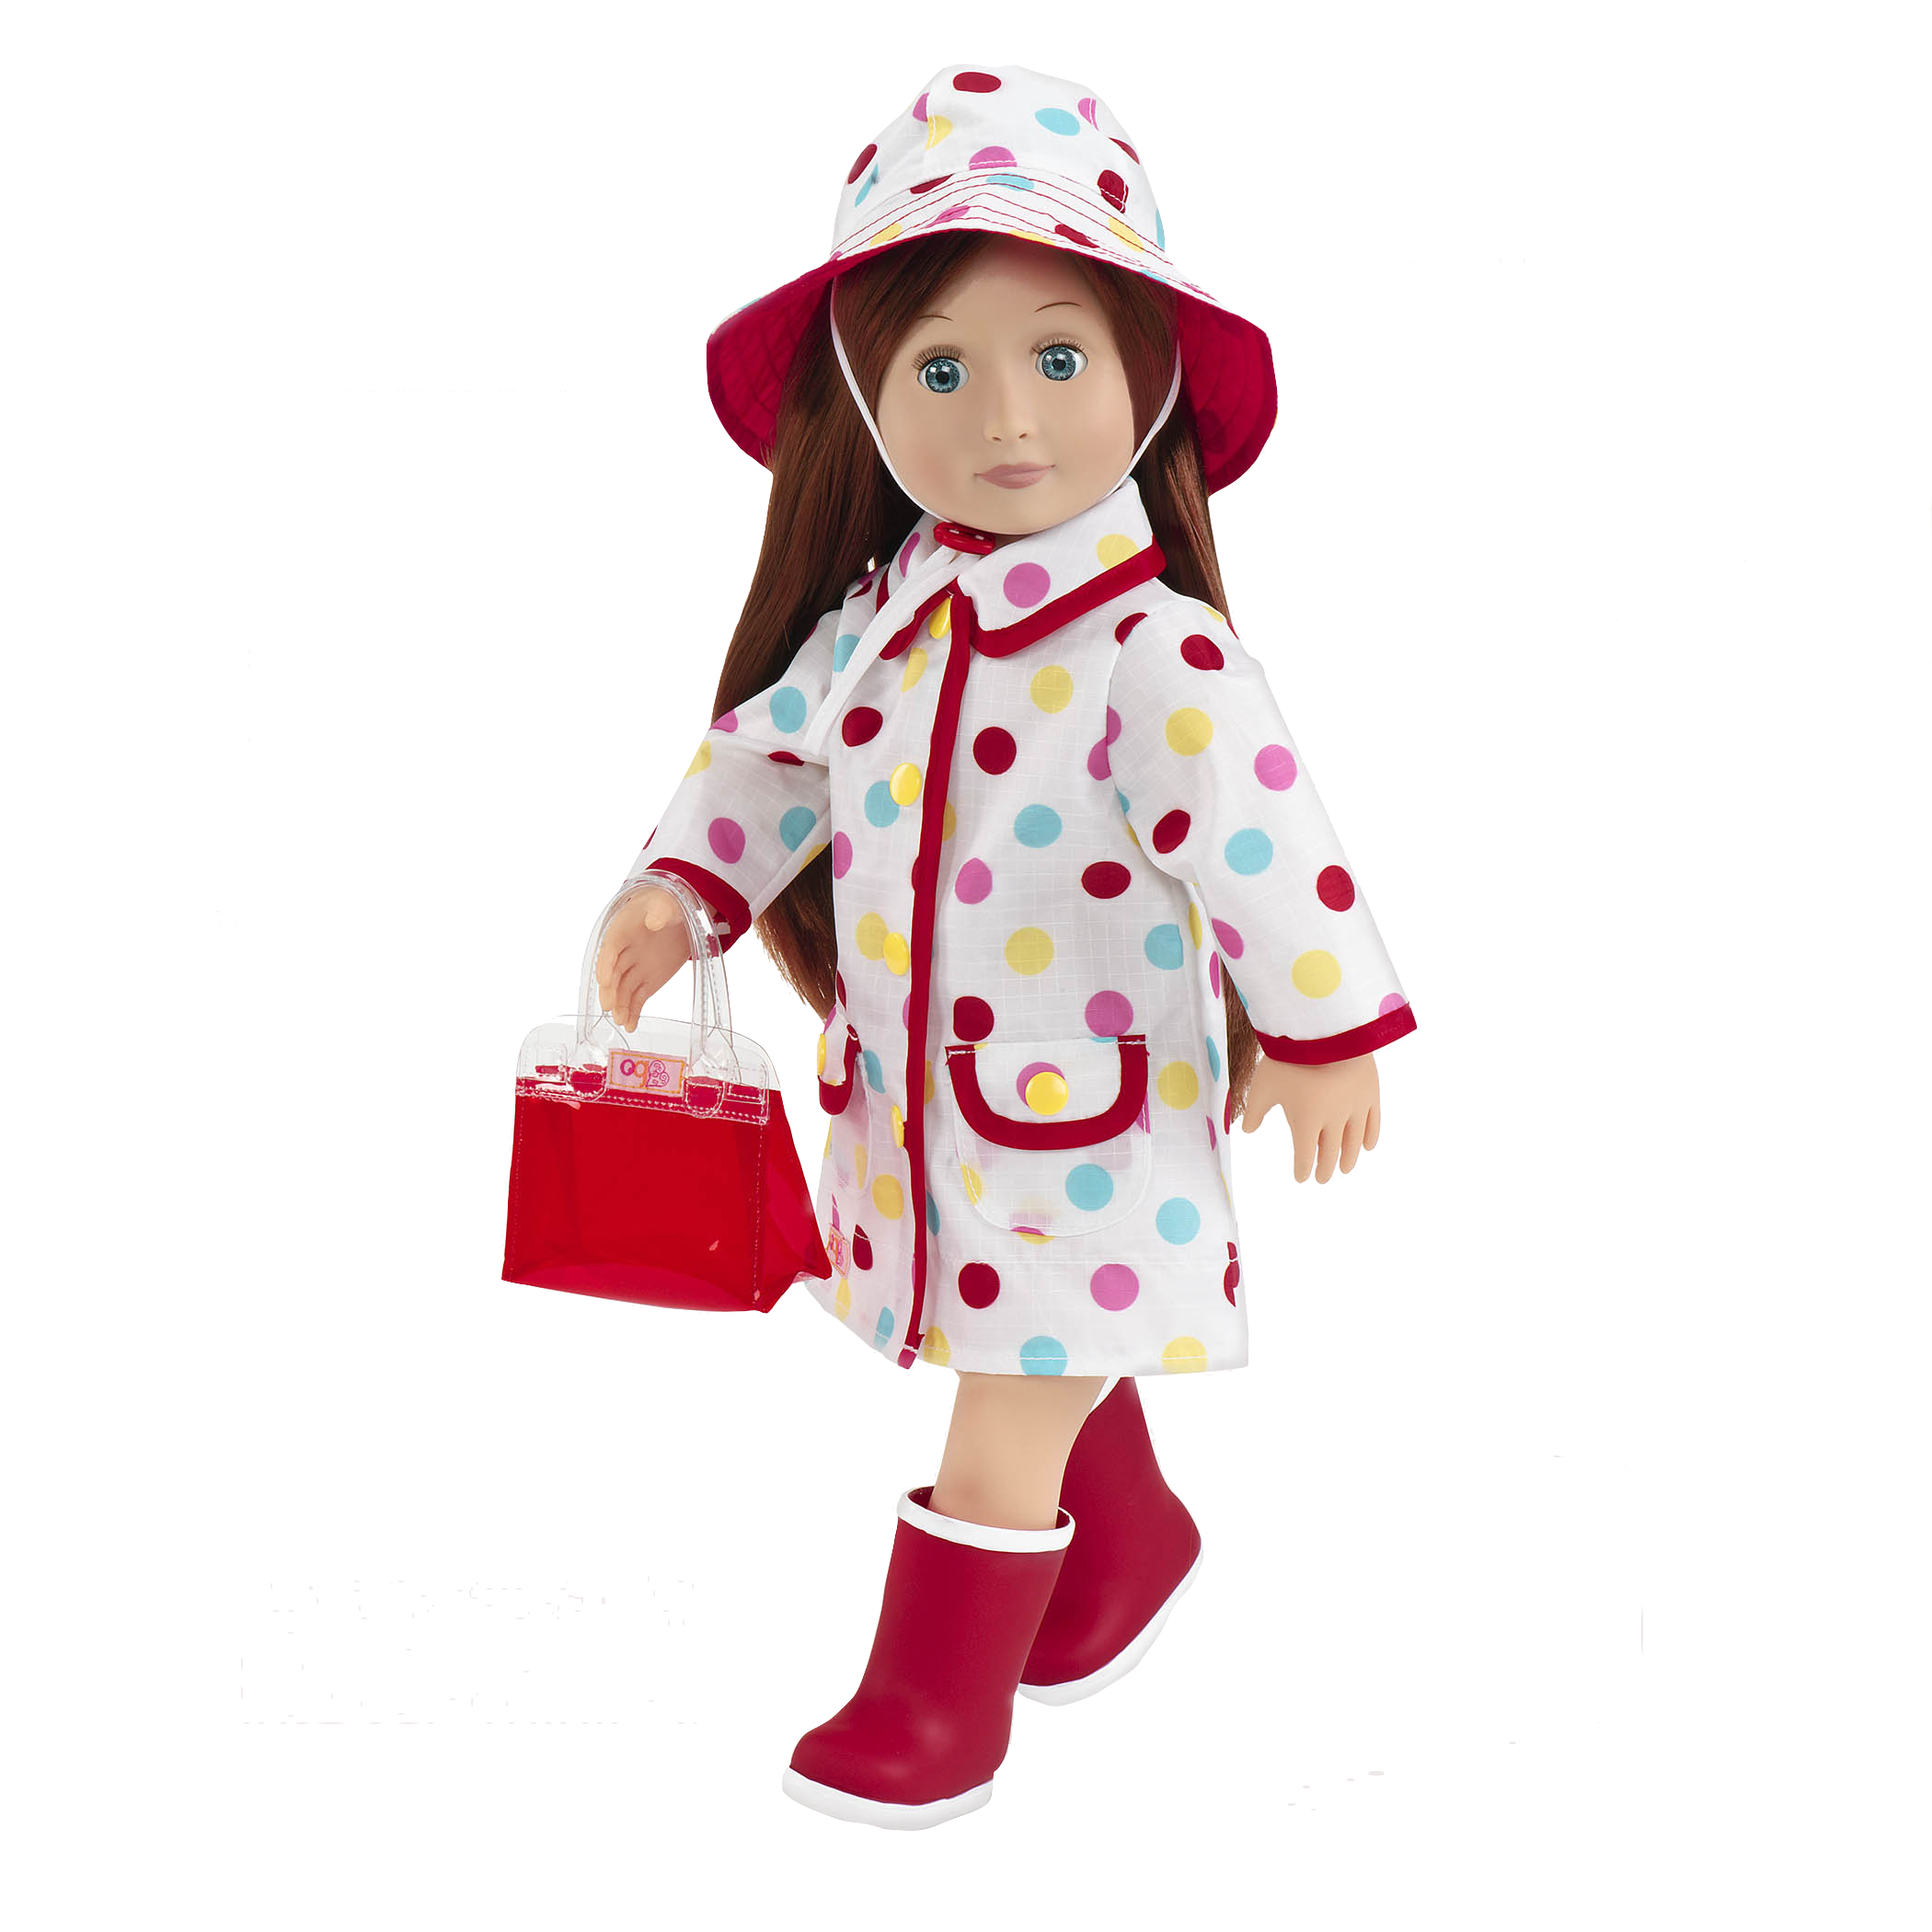 Ayla wearing A Spot of Rain Outfit